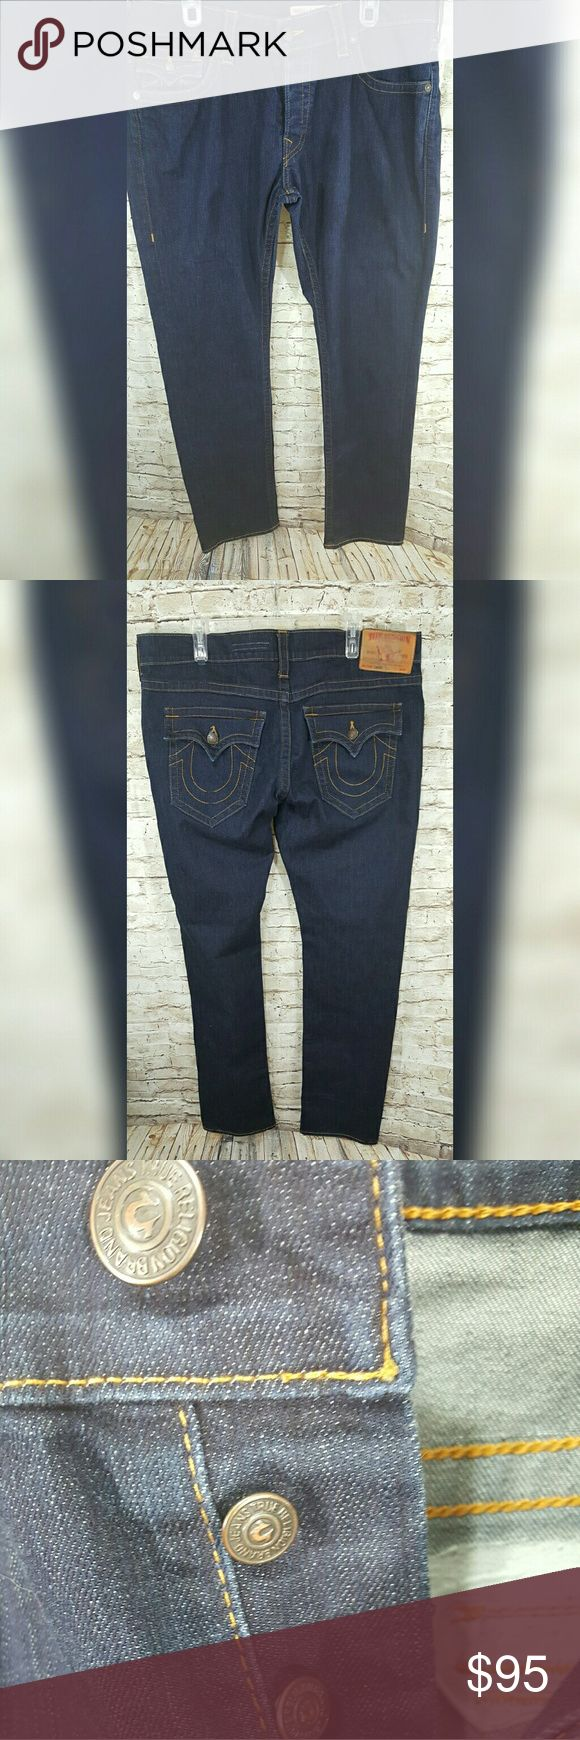 True Religion Men Jeans size 38 Gently worn Traditional bootcut True Religion jeans with no flaws. Straight fit with the True Religion buttions for the closure. True Religion Jeans Straight